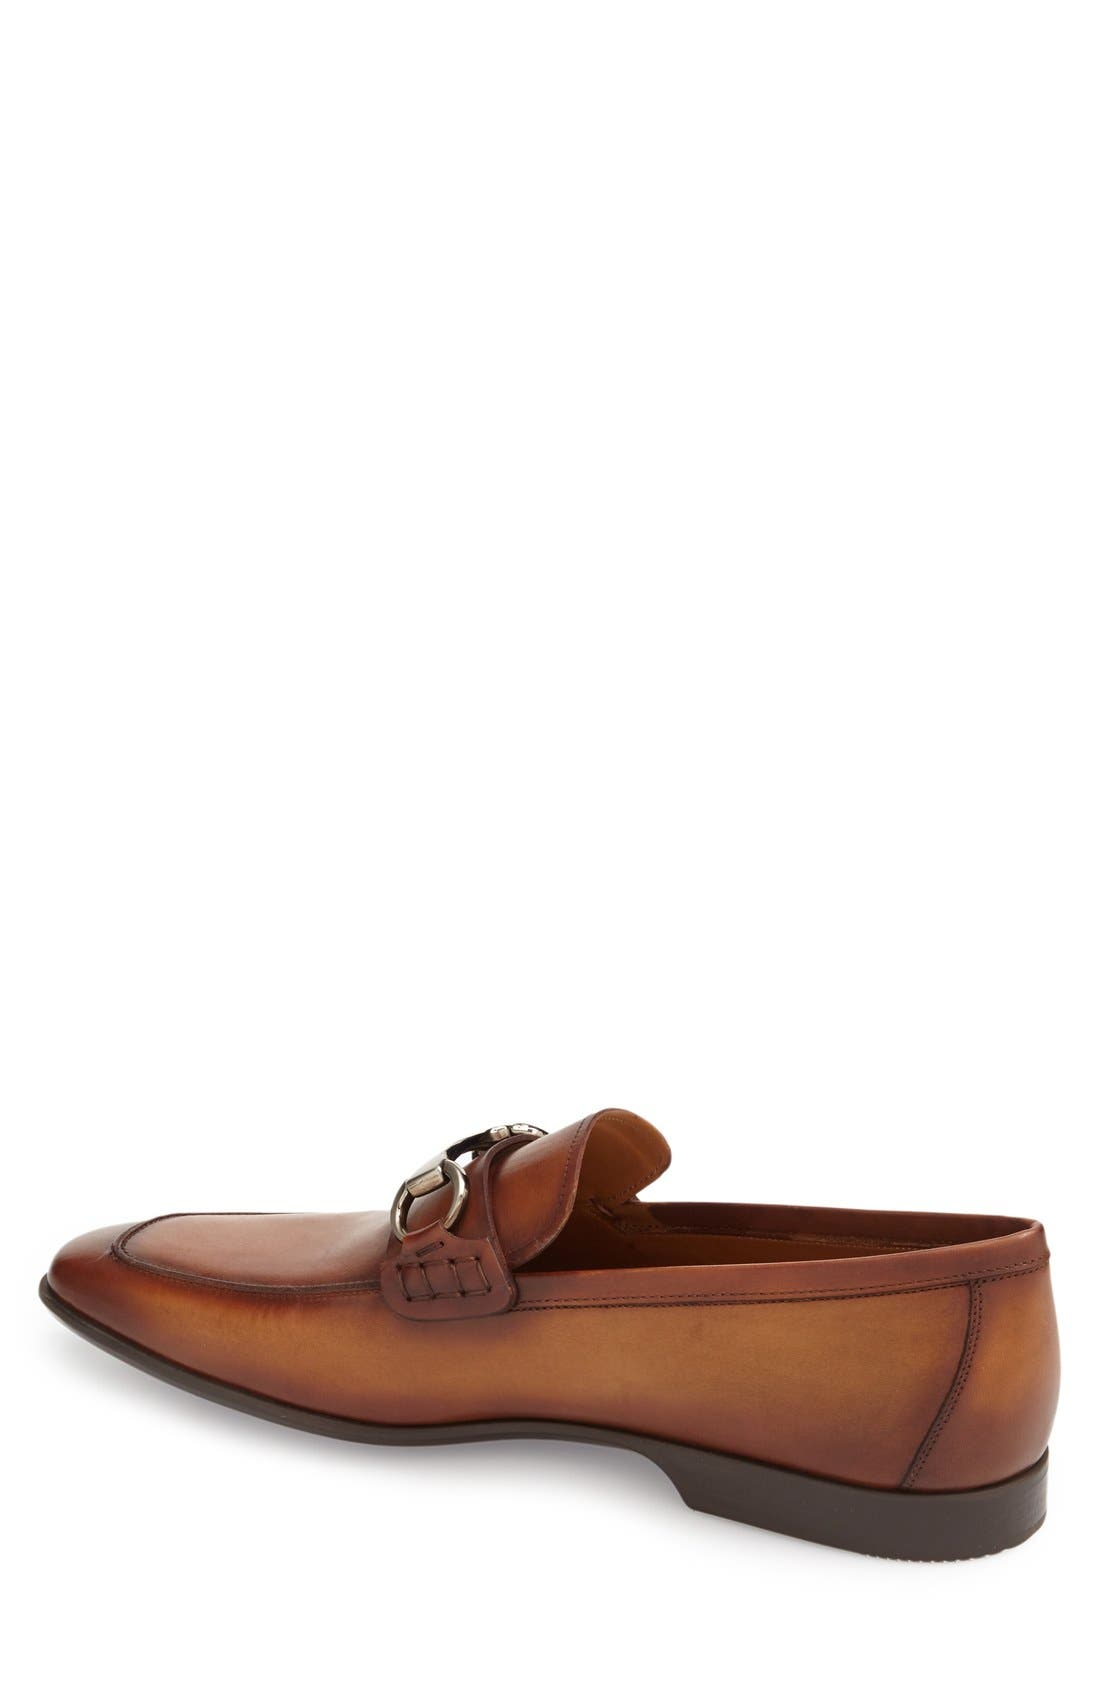 'Rafa II' Bit Loafer,                             Alternate thumbnail 2, color,                             Cognac Leather